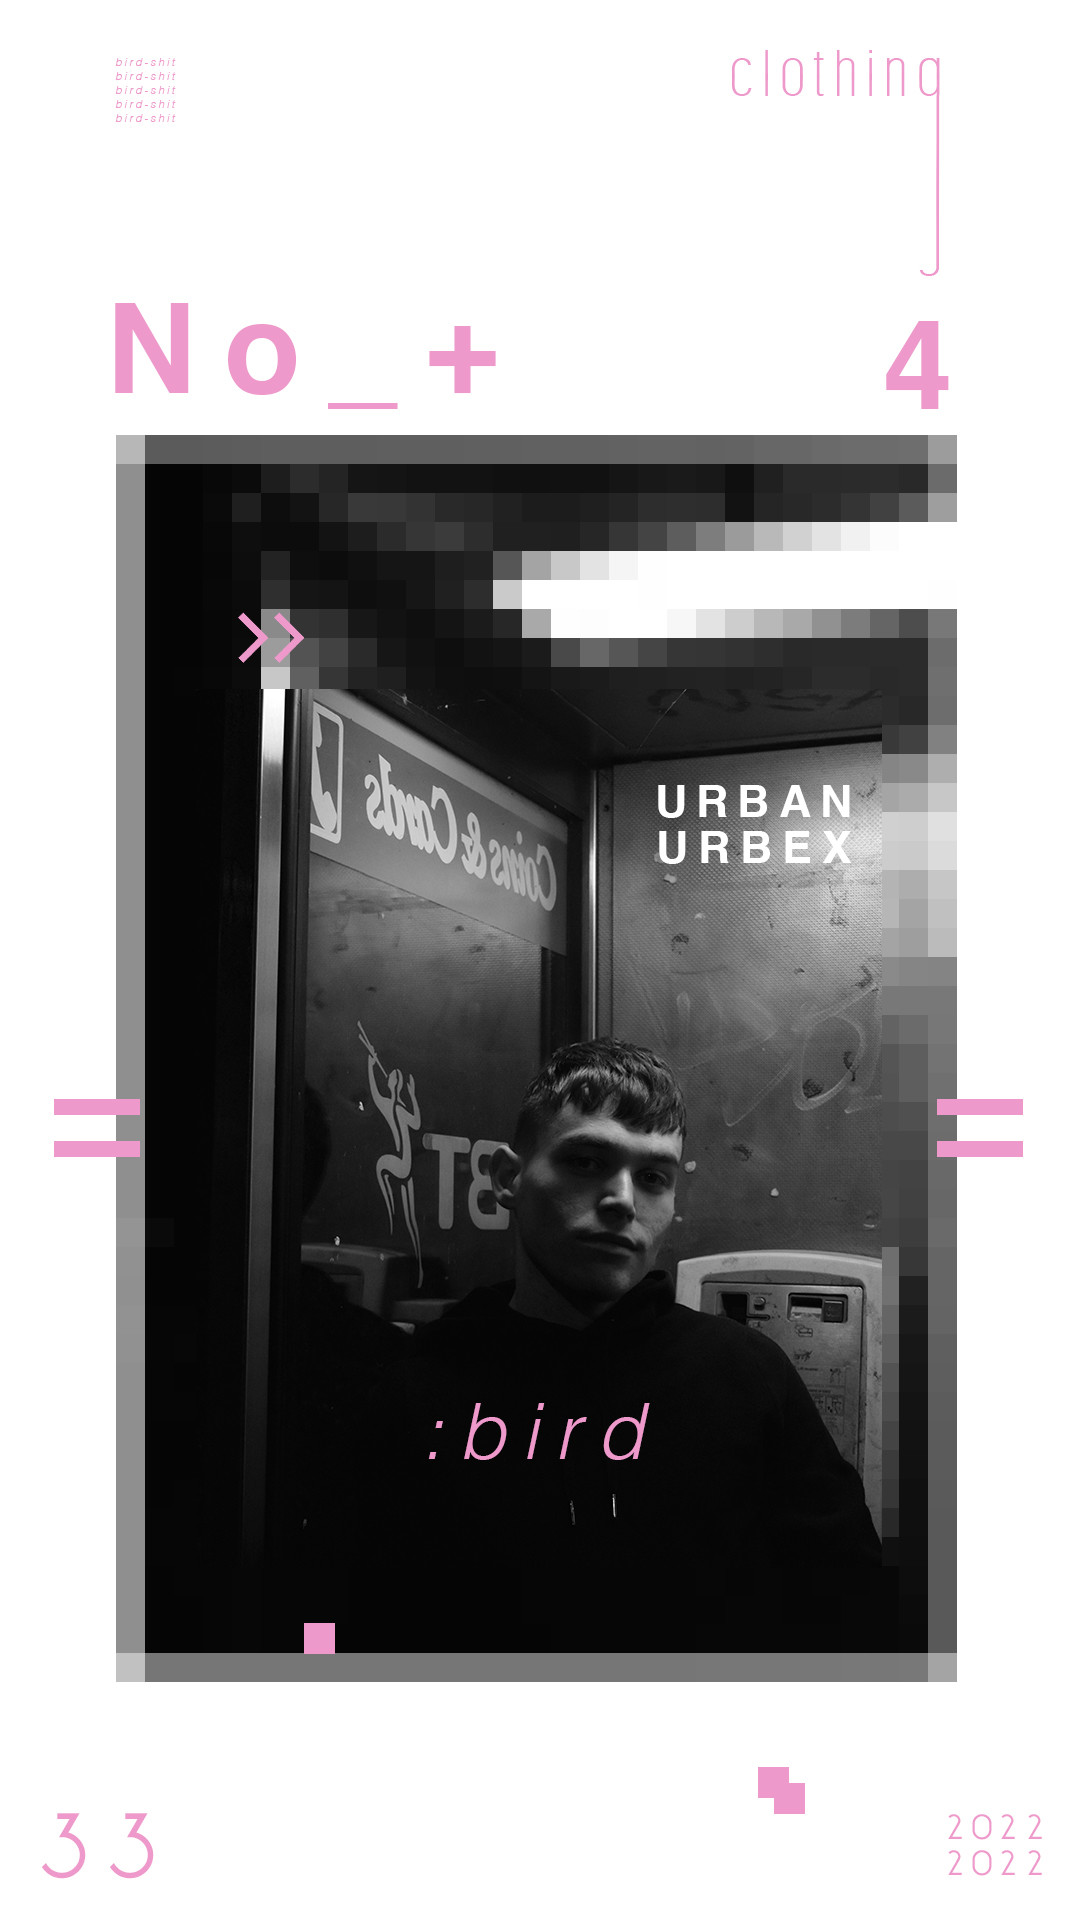 Lewis wagstx bird shit clothing poster